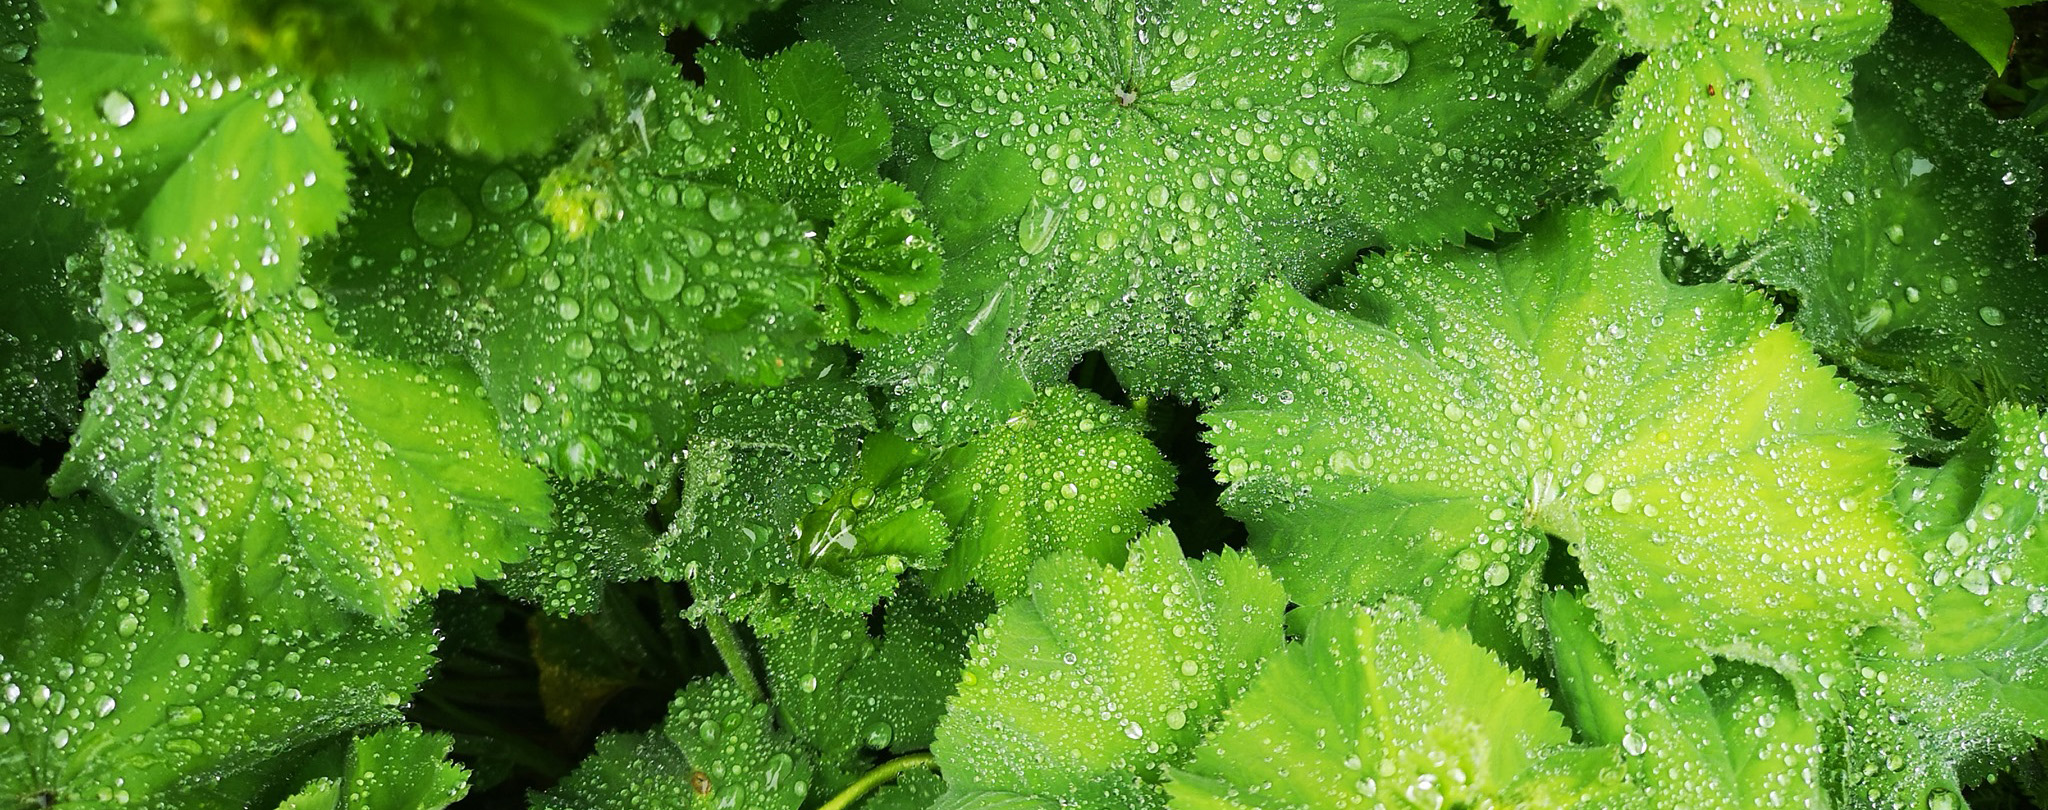 Gardening-page-photo-of-alchemilla-in-the-rain